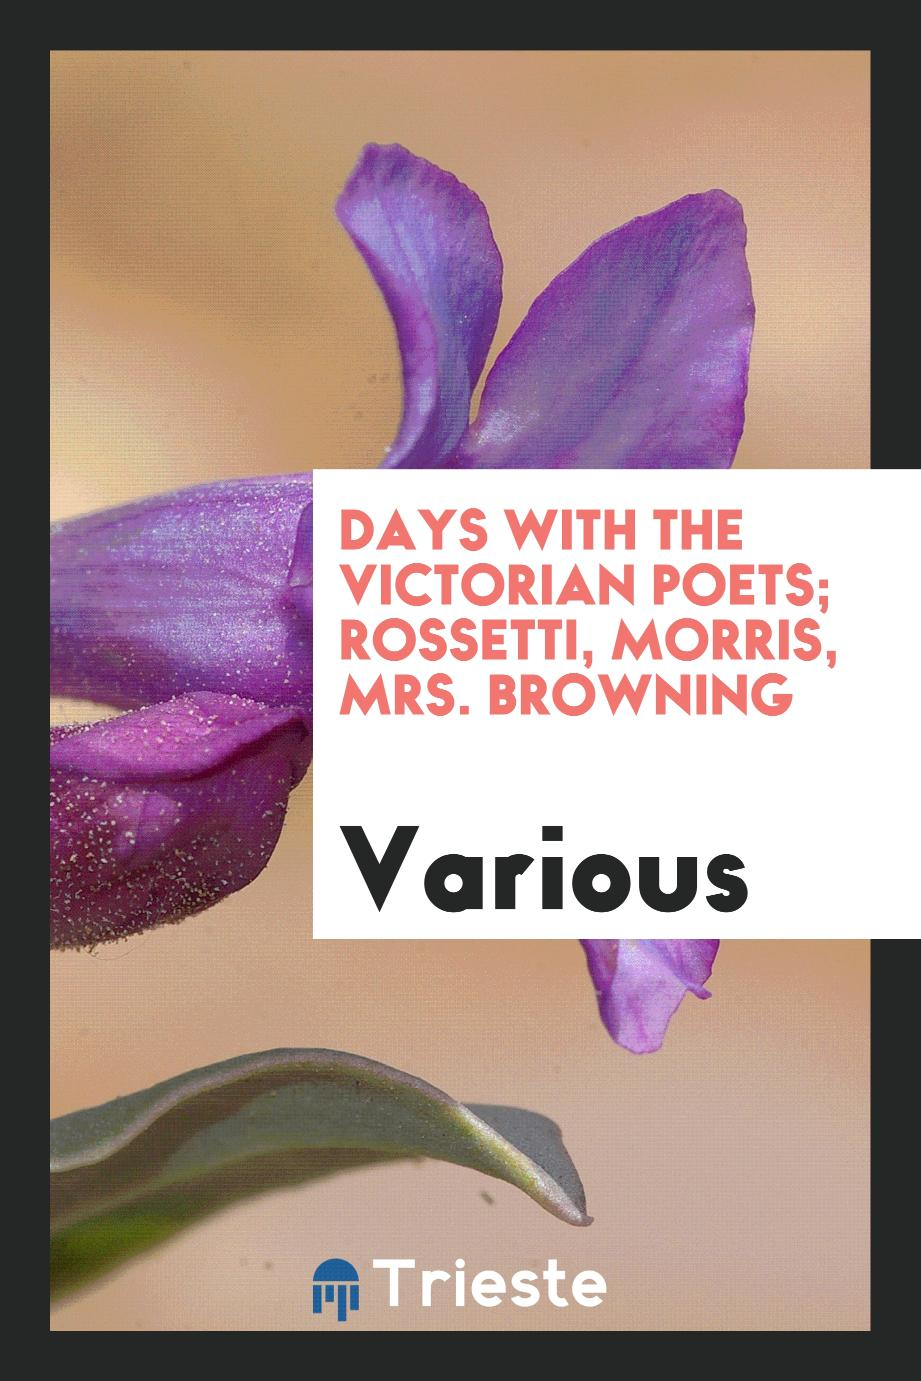 Days with the Victorian poets; Rossetti, Morris, Mrs. Browning